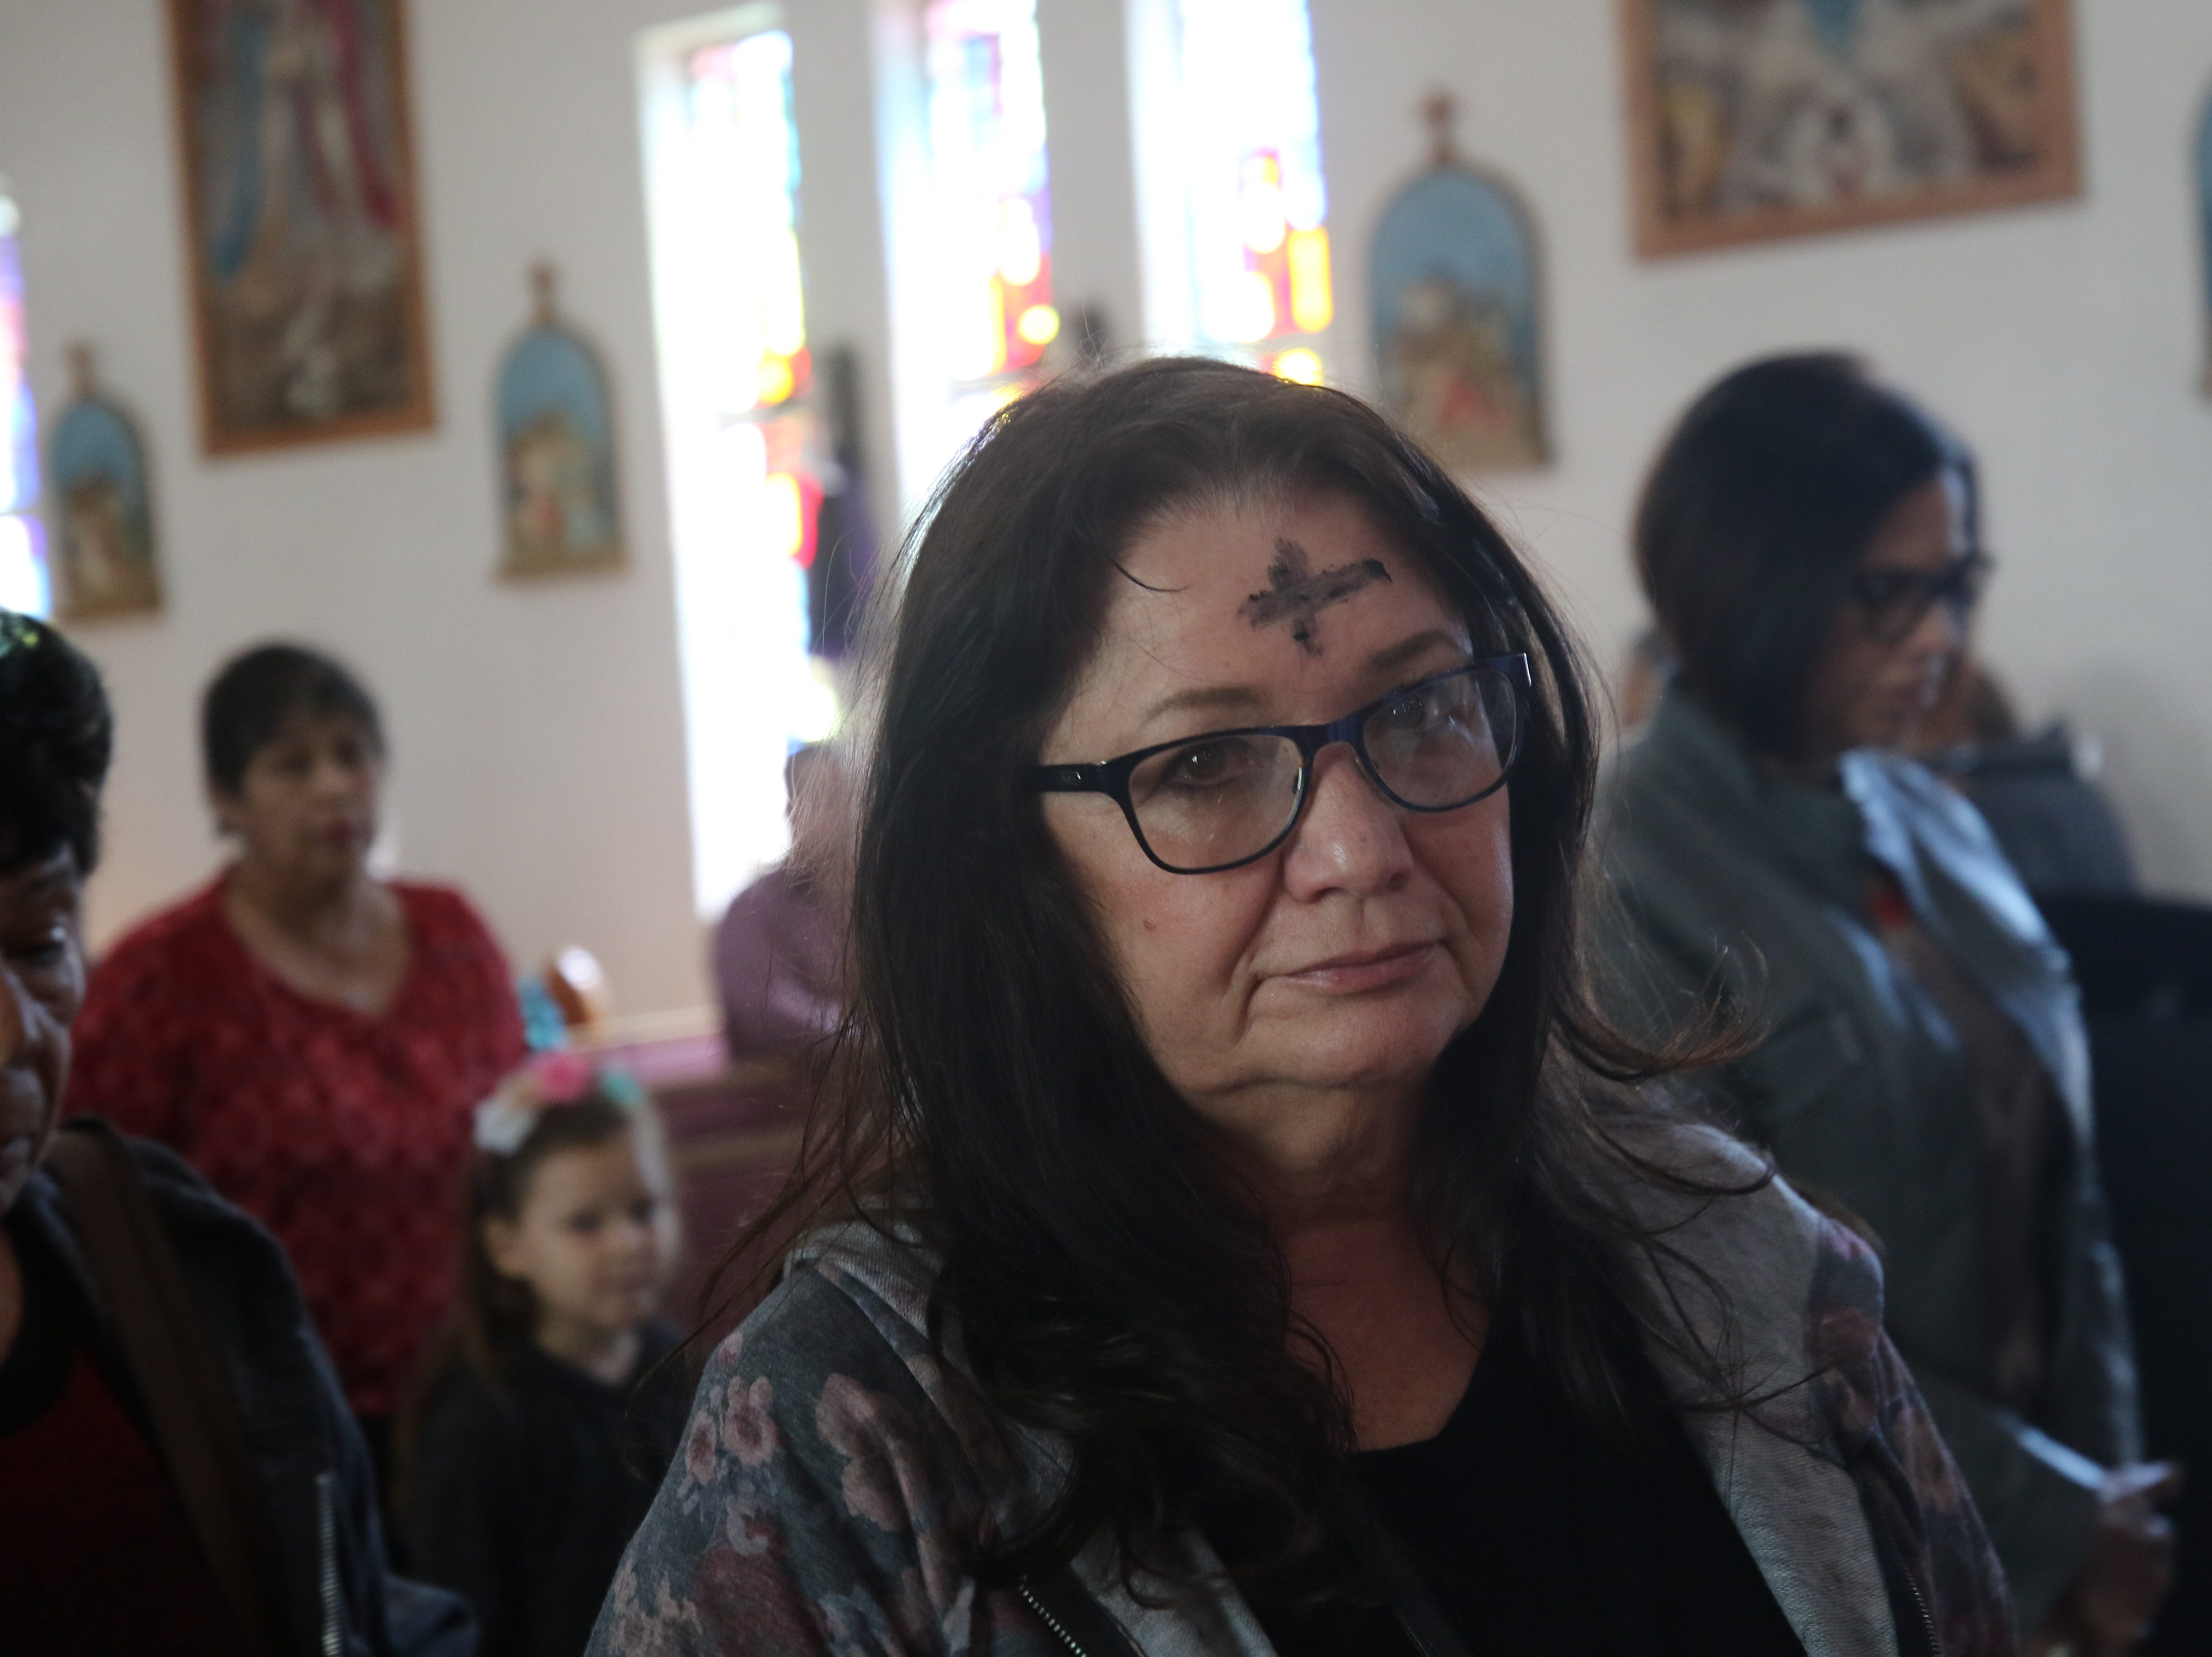 Carlsbad residents attend an Ash Wednesday mass, March 6, 2019 at St Edward Catholic Church.